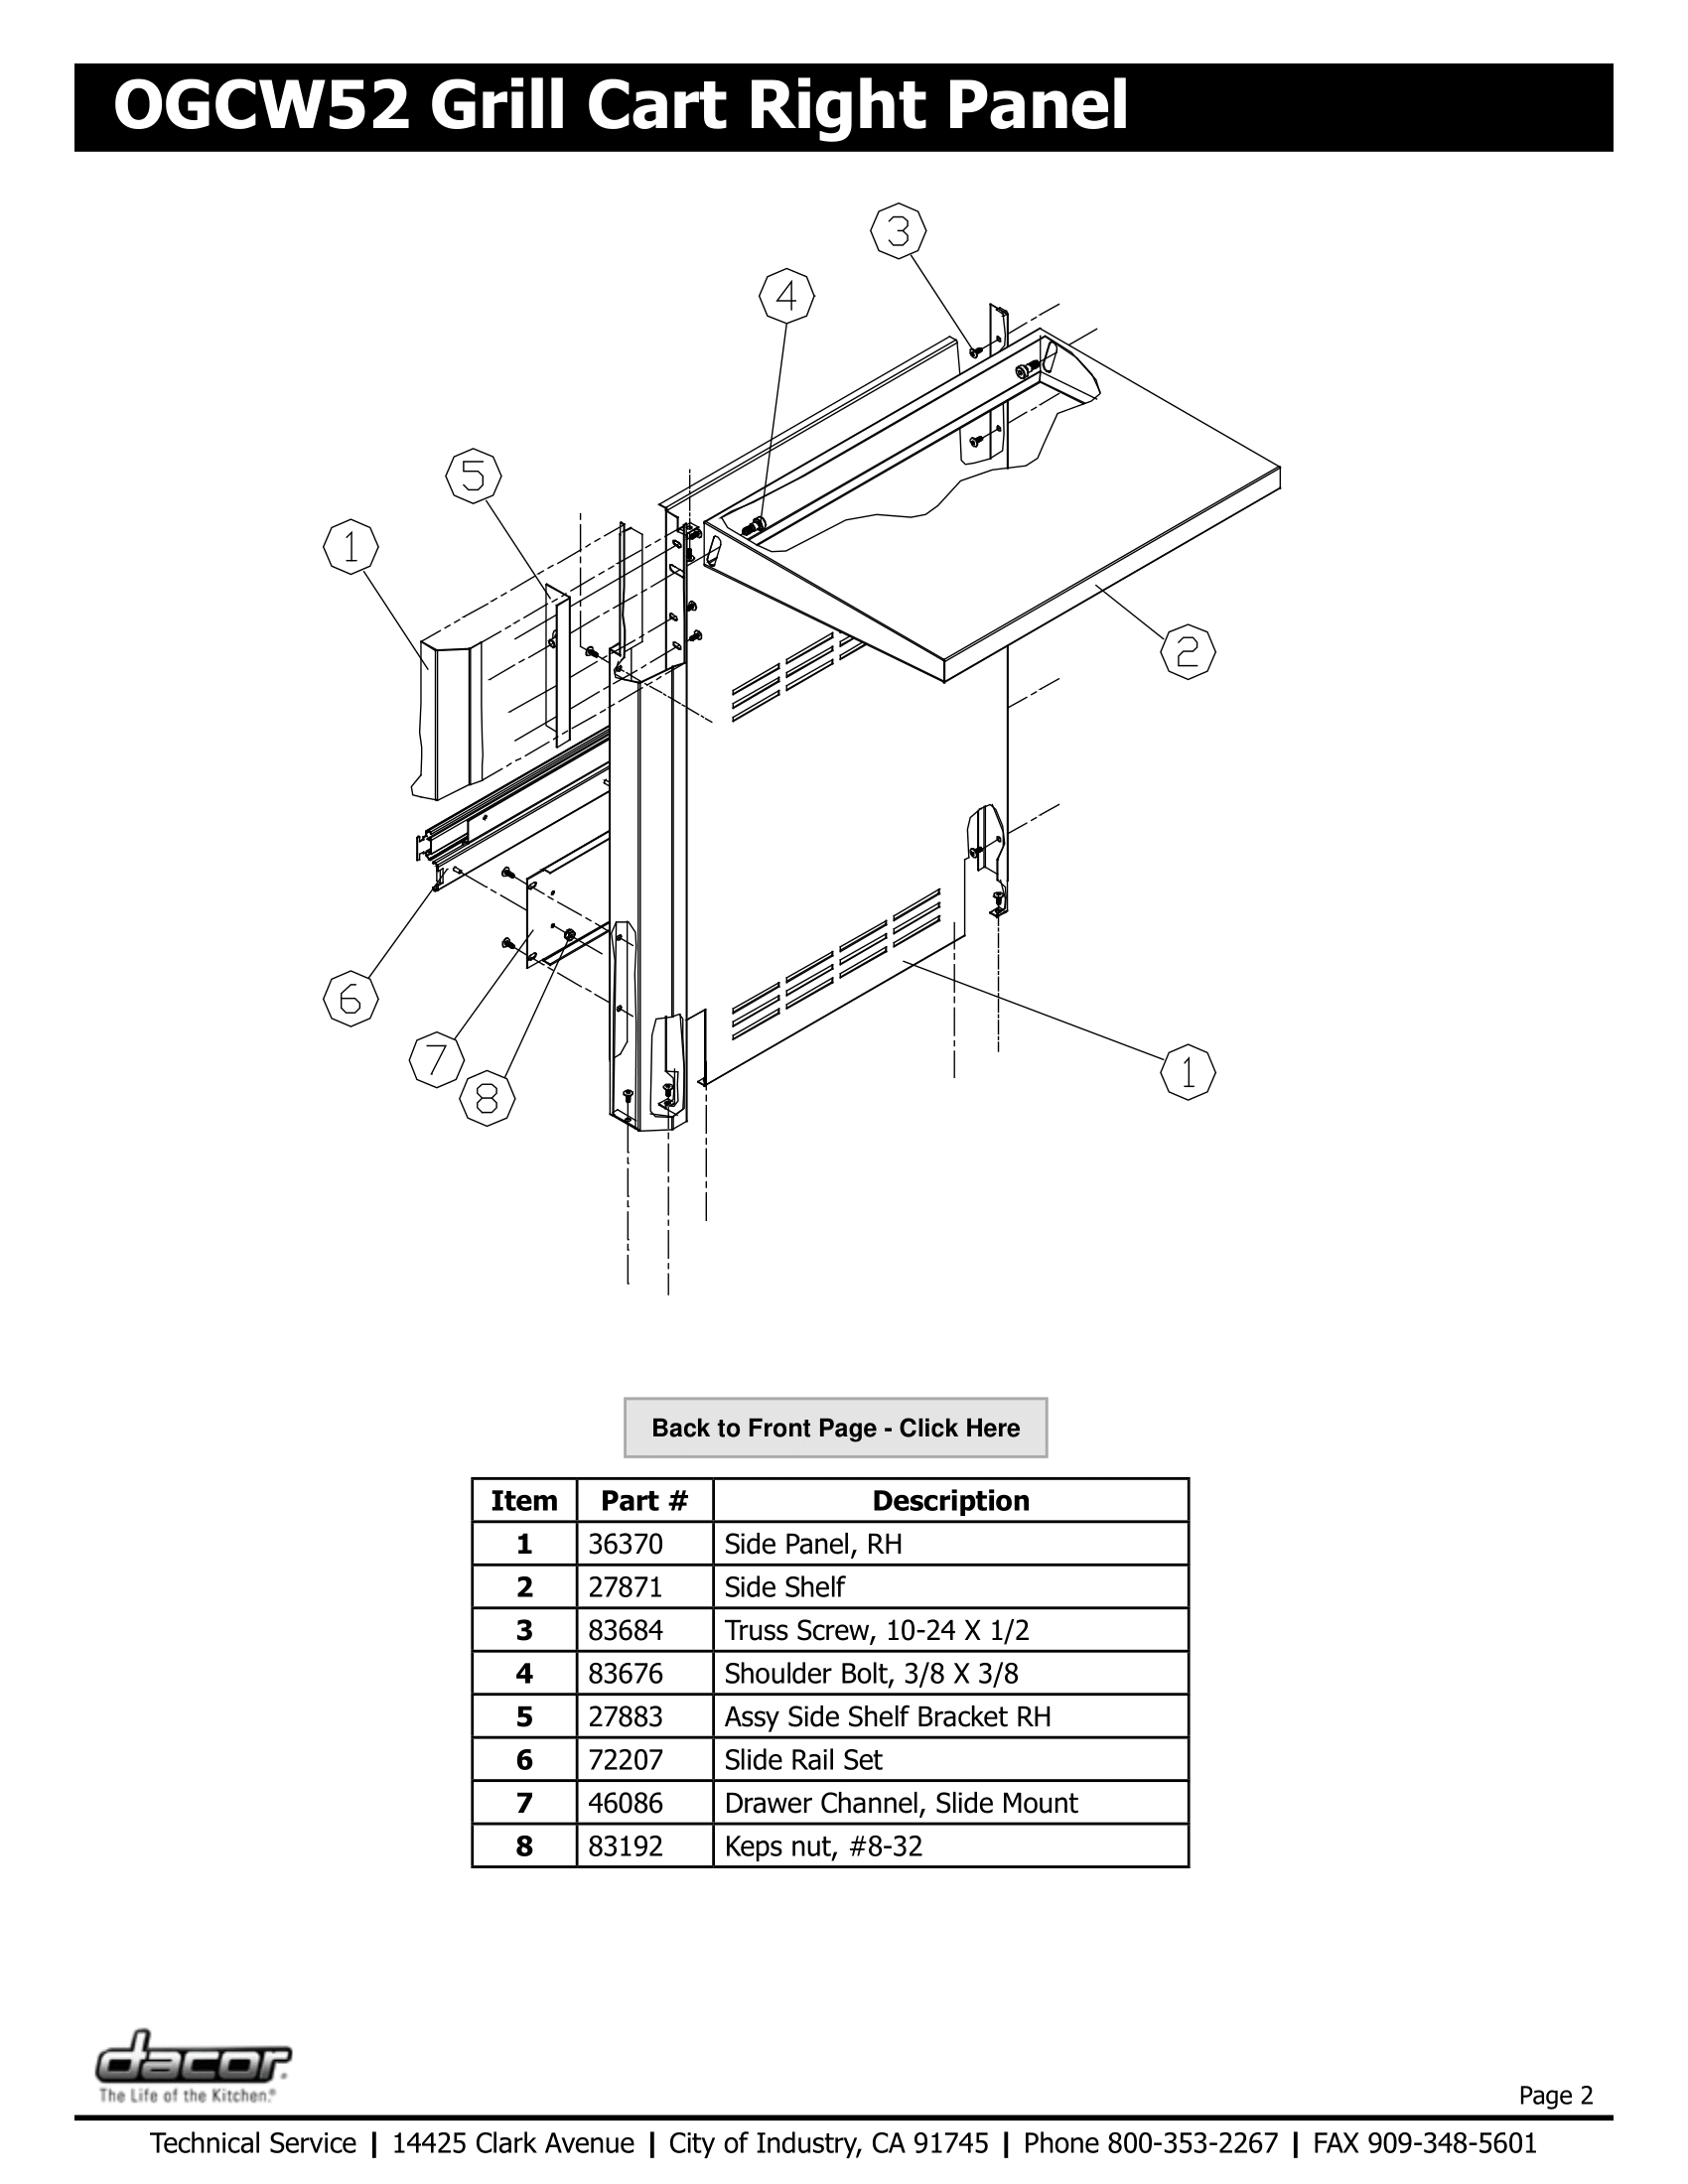 Dacor OGCW52 Right Panel Schematic